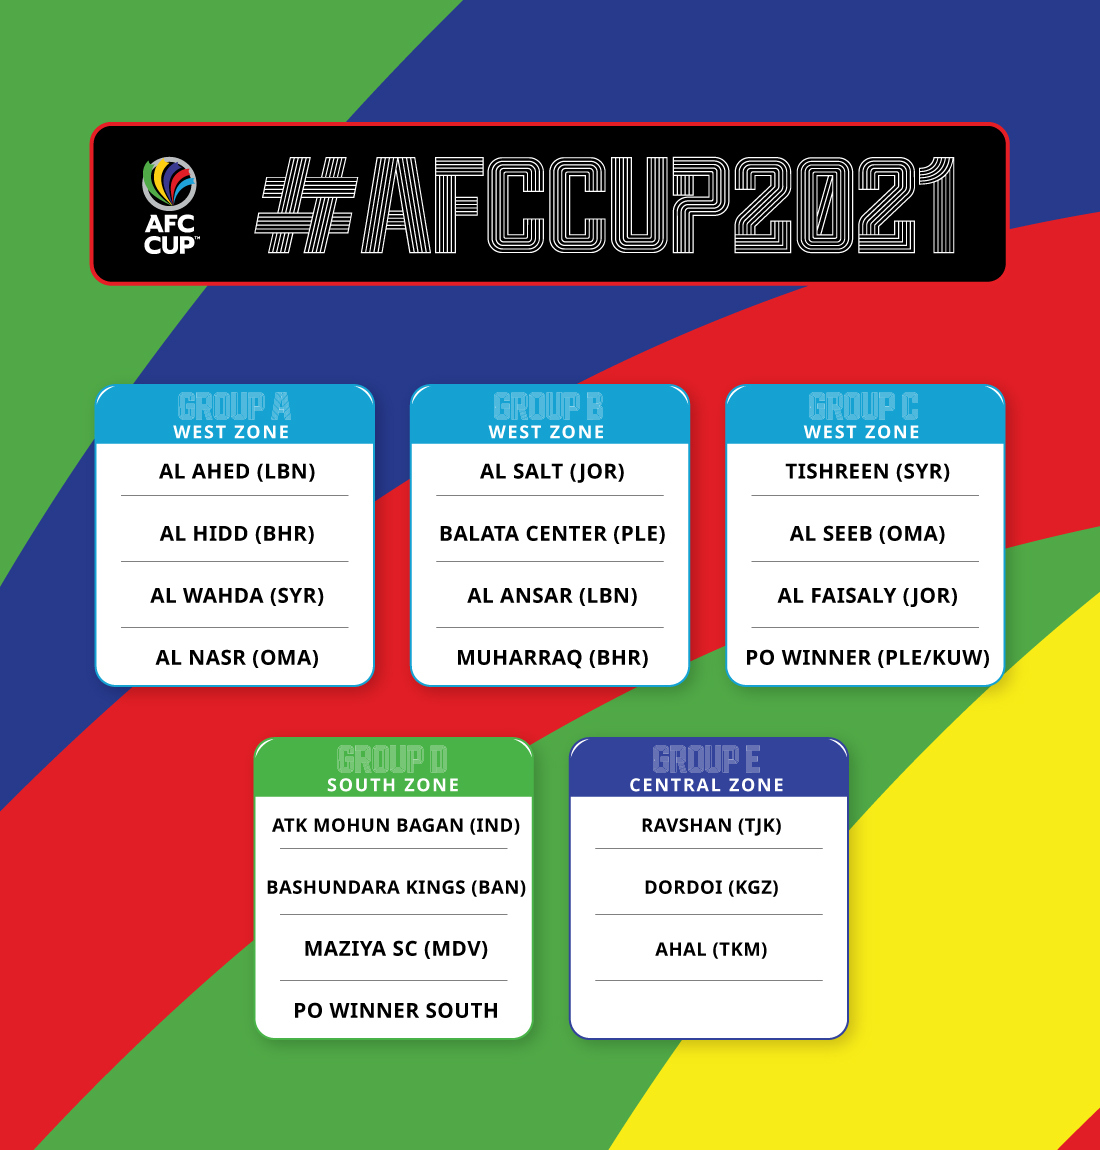 Replying to @AFCCup: #AFCCup2021 Group Stage draw results!  Which team do you support? Tell us!